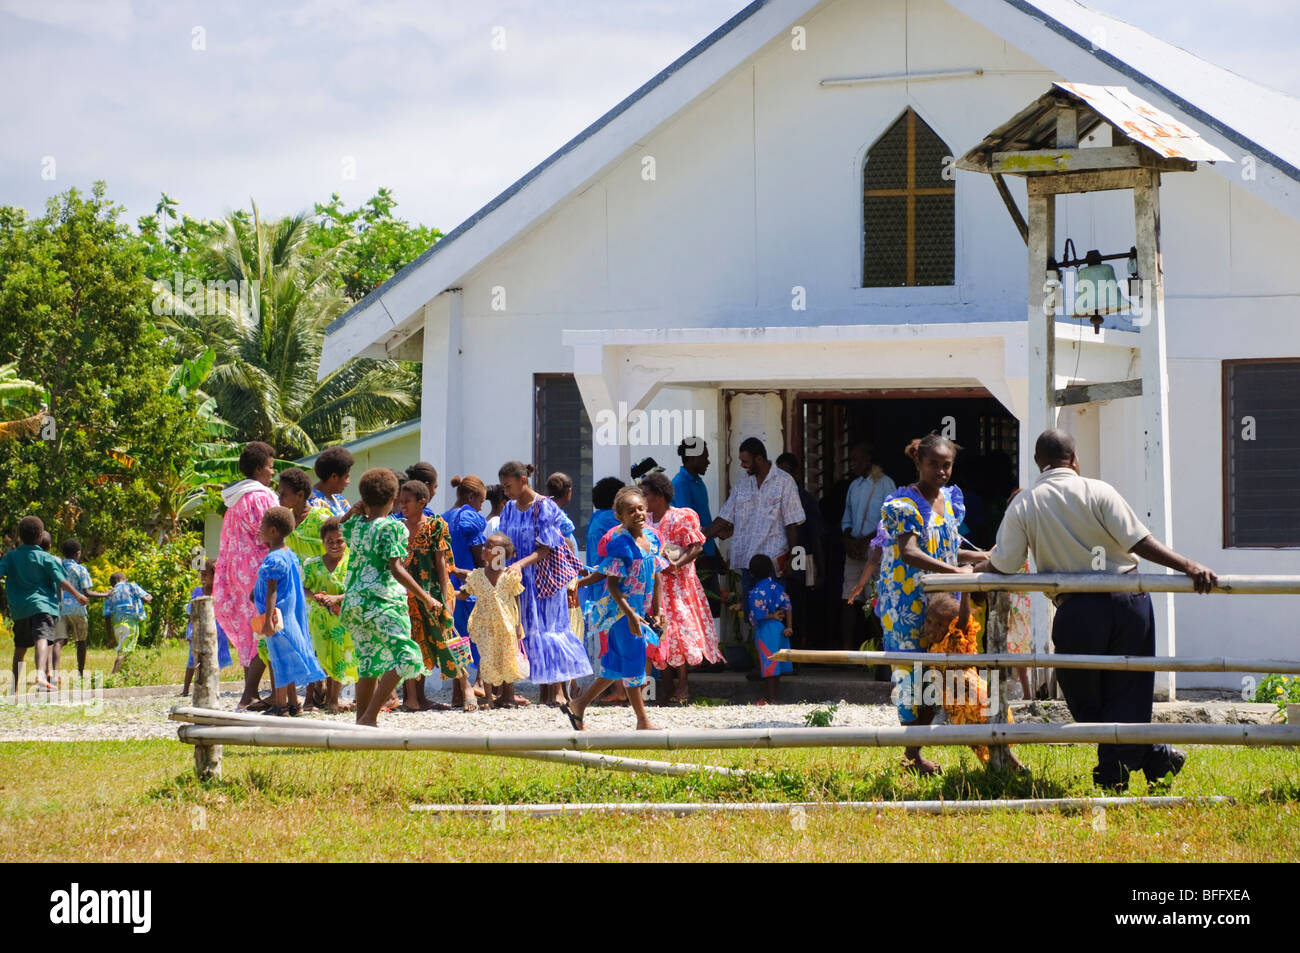 Brightly dressed ladies leaving church. - Stock Image